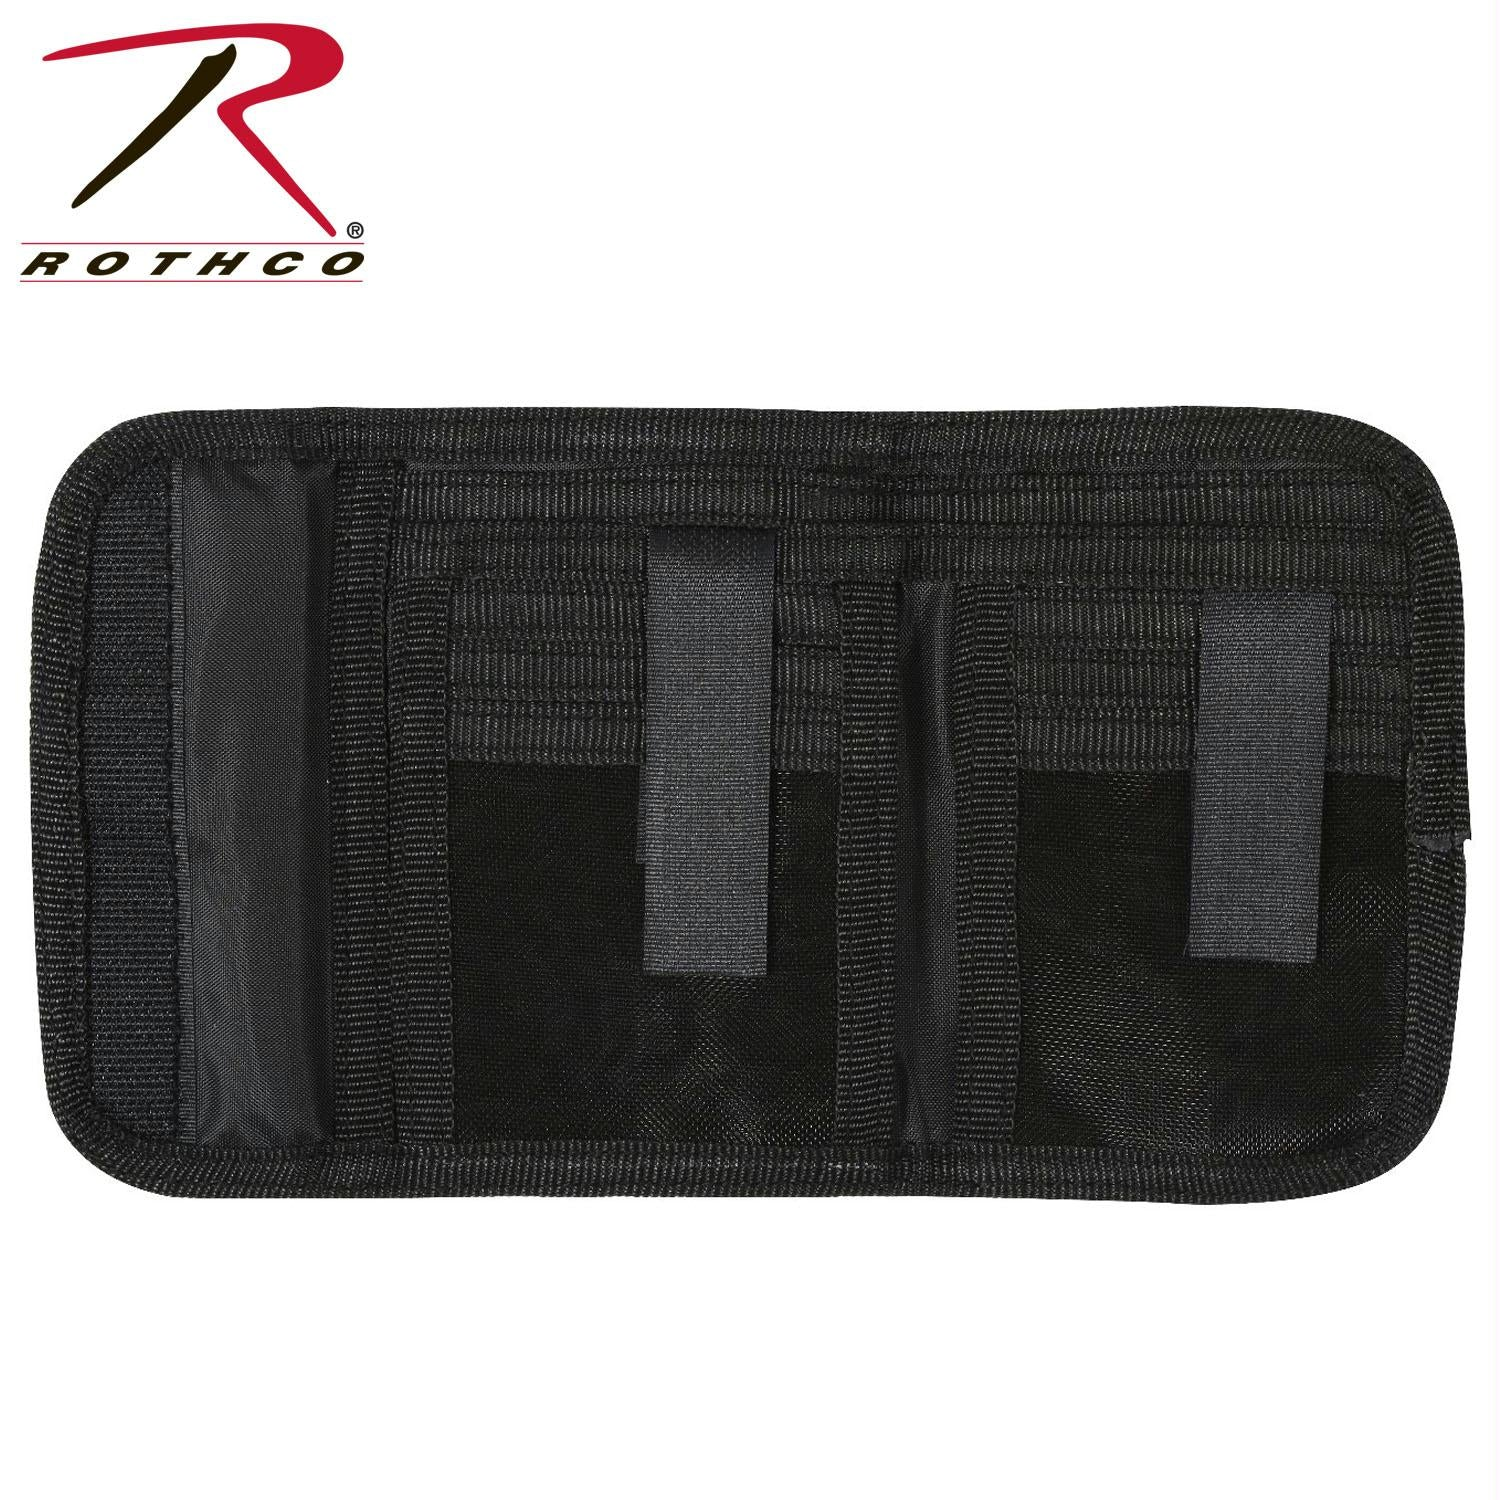 Rothco Deluxe Tri-Fold ID Wallet - Black